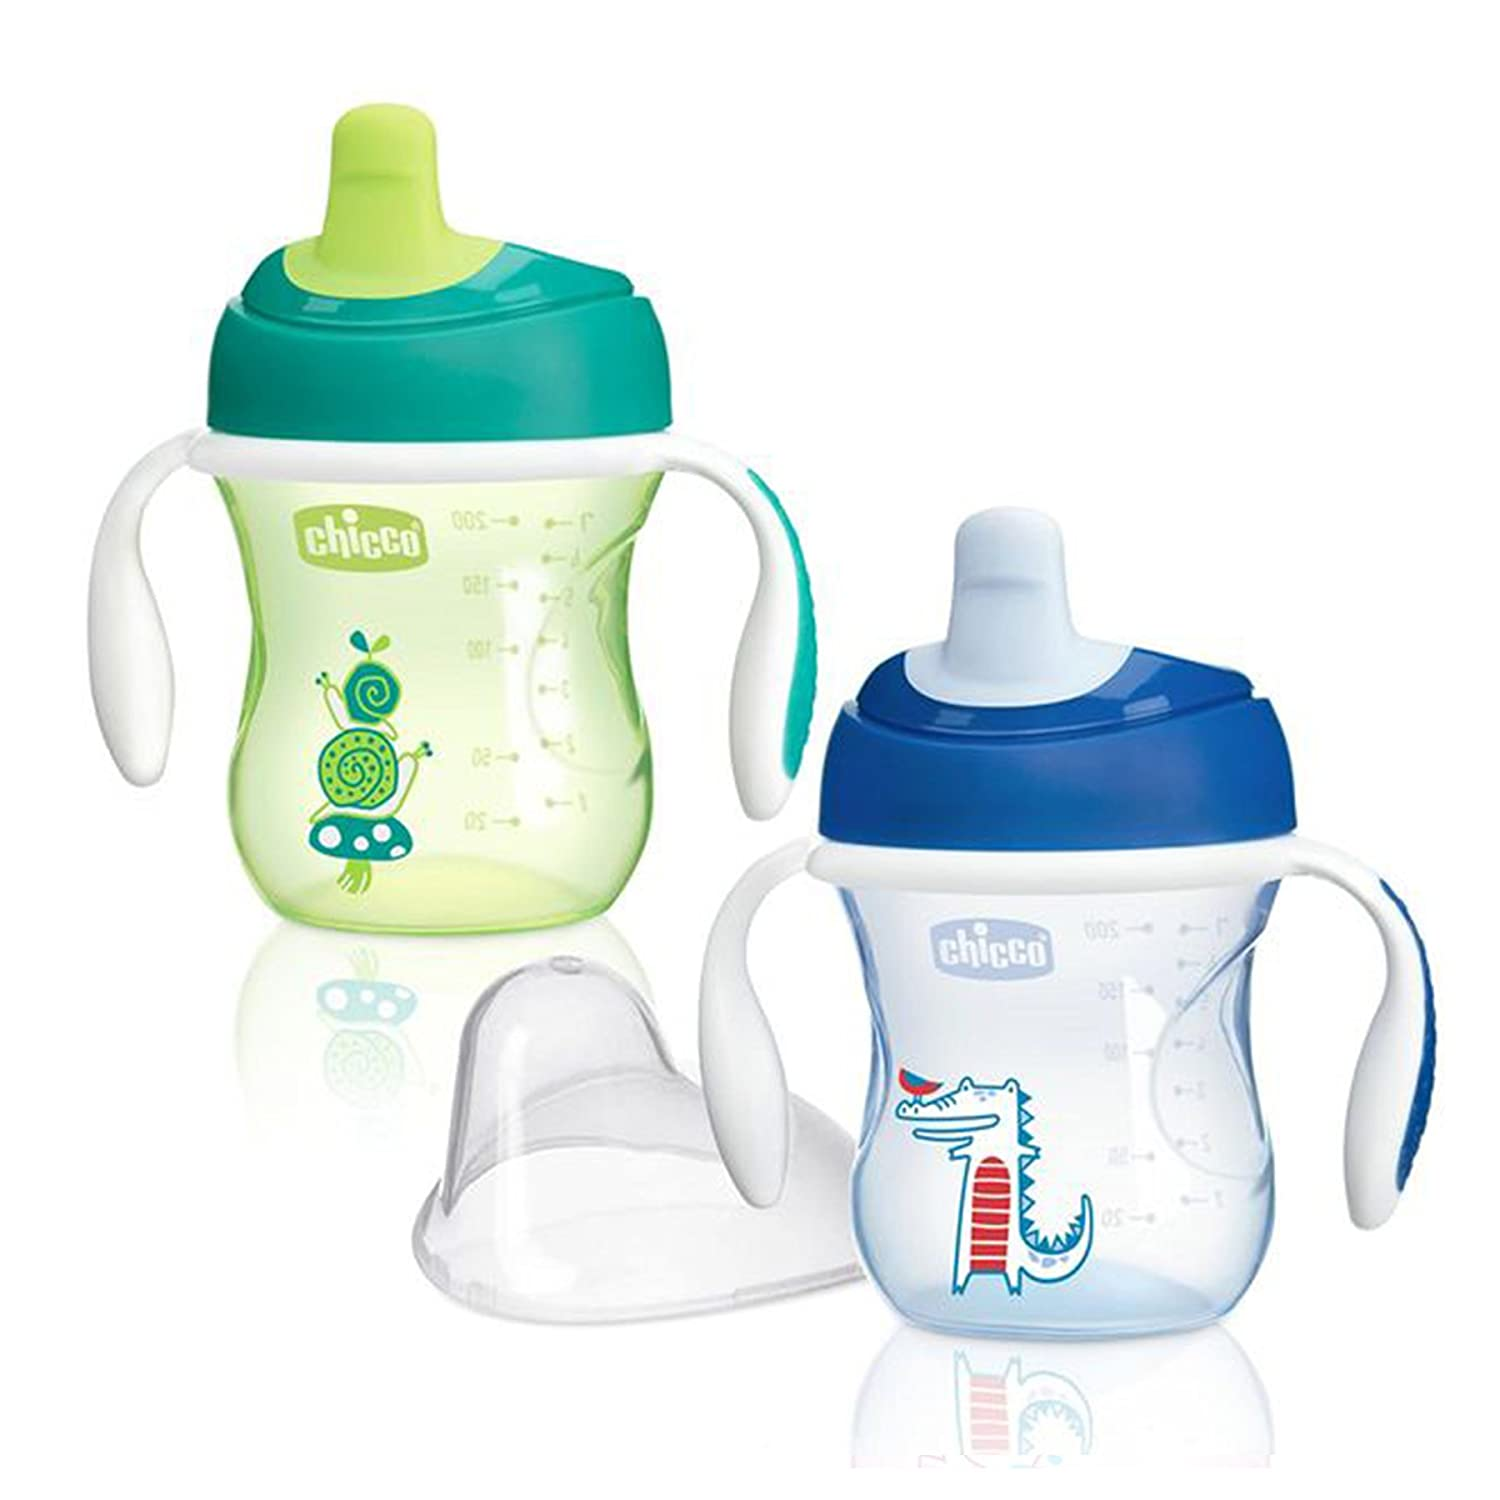 Chicco NaturalFit Semi Soft Spout Trainer Sippy Cup, in Assorted Colors, 7 Ounce, 2 Count 00006922210070